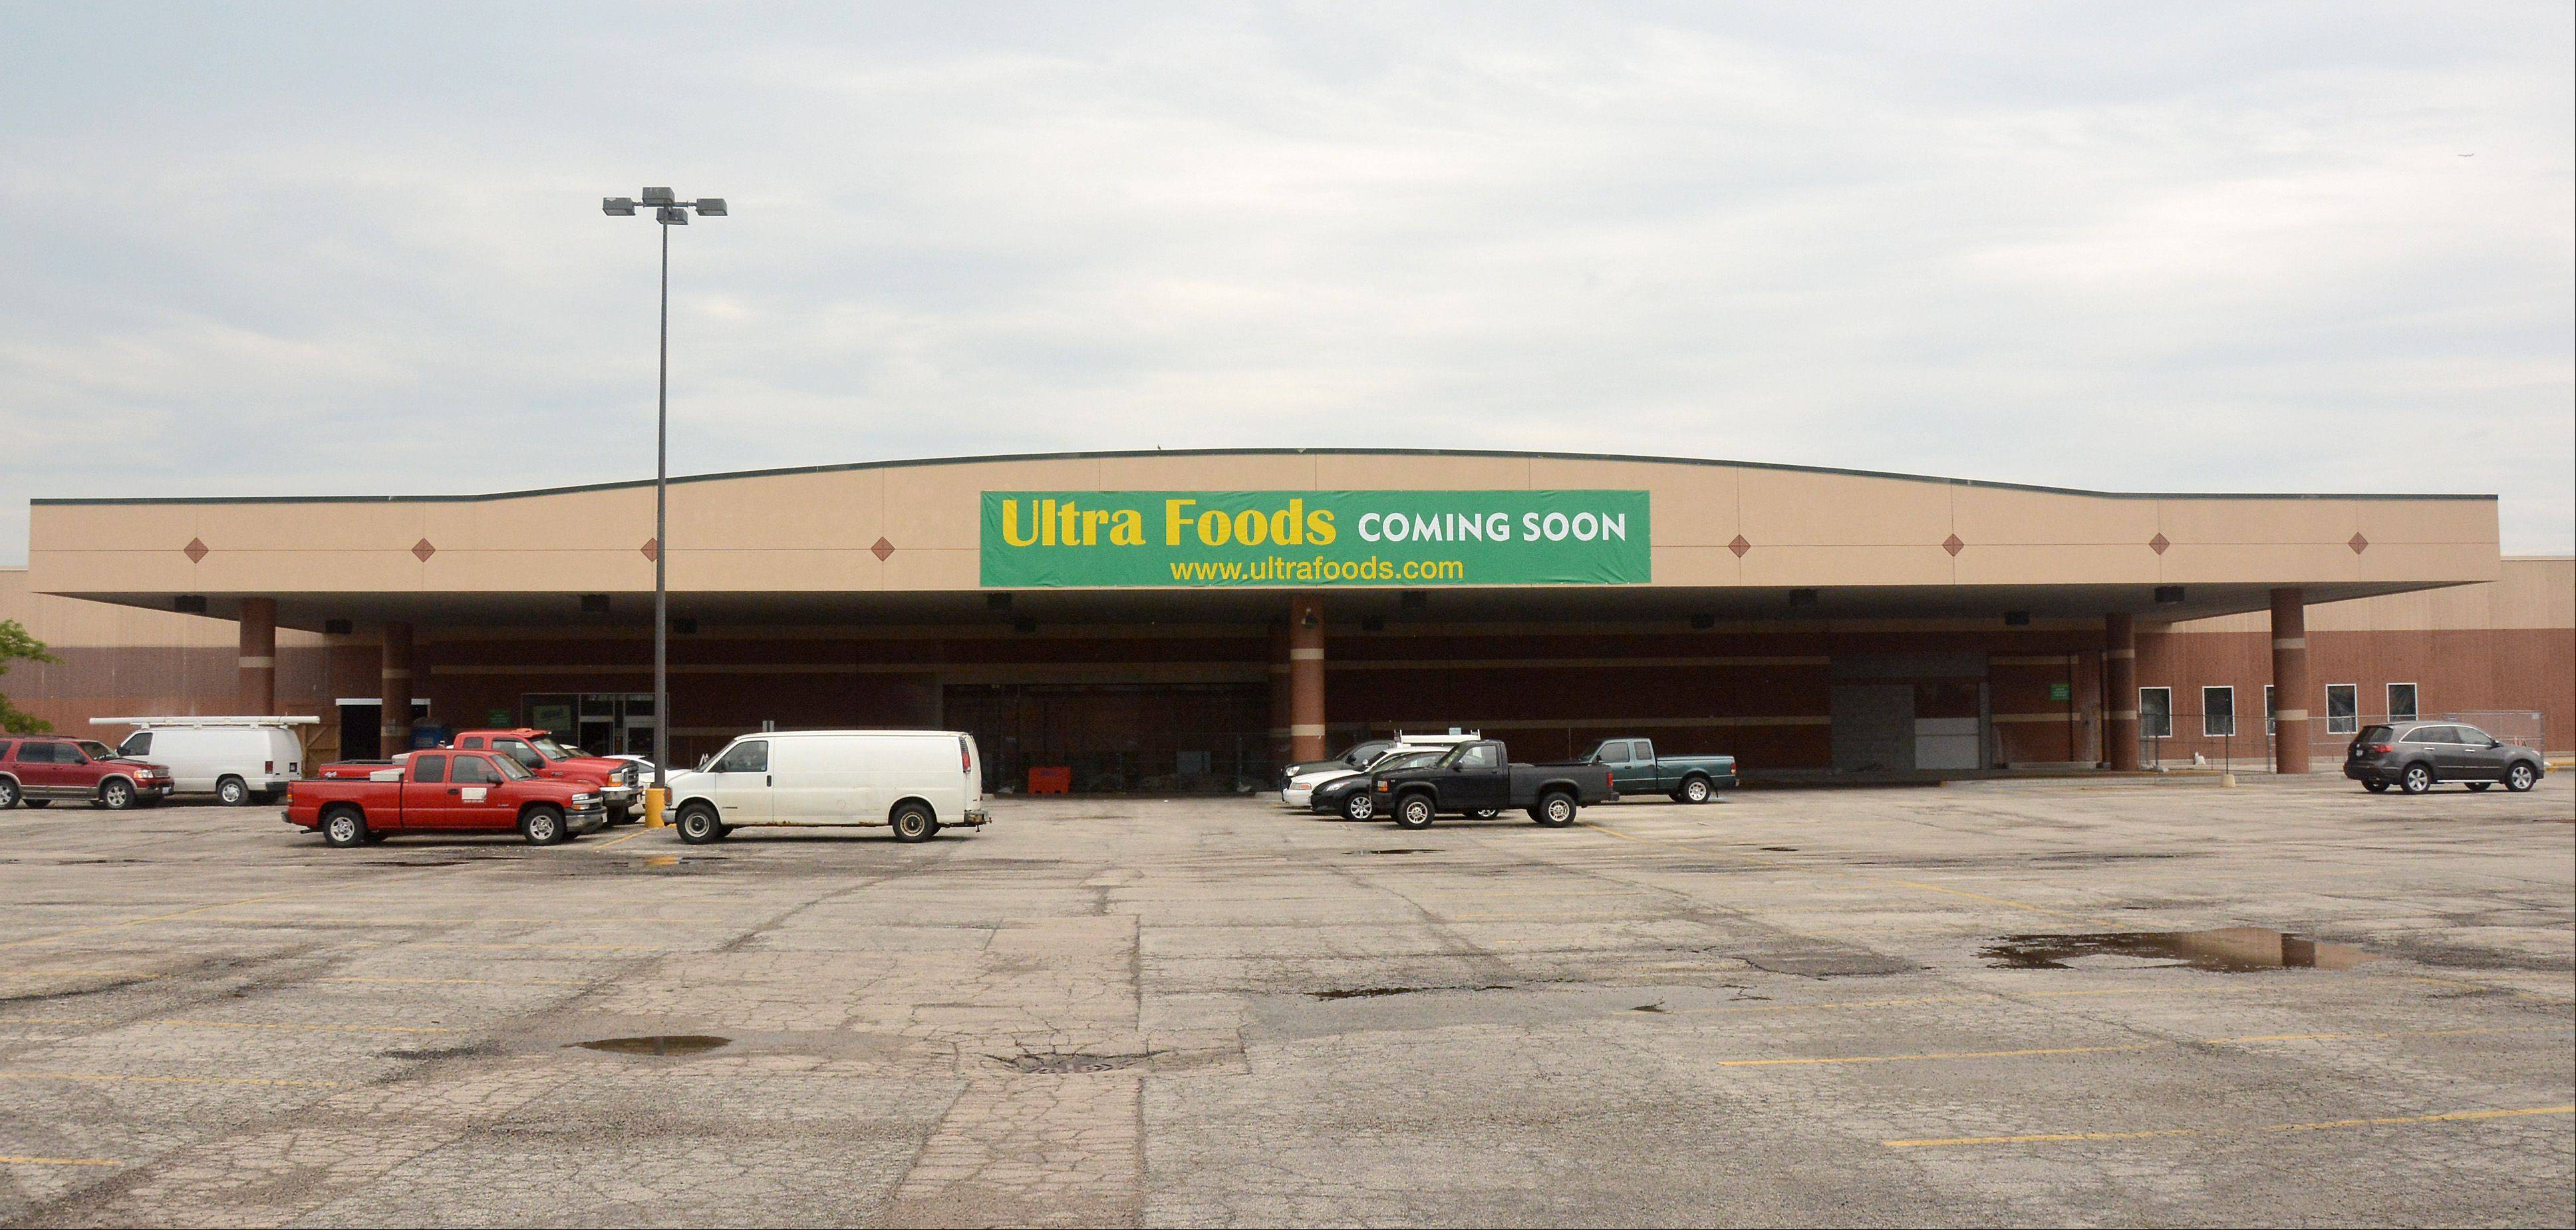 The Ultra Foods under construction on Rand Road.